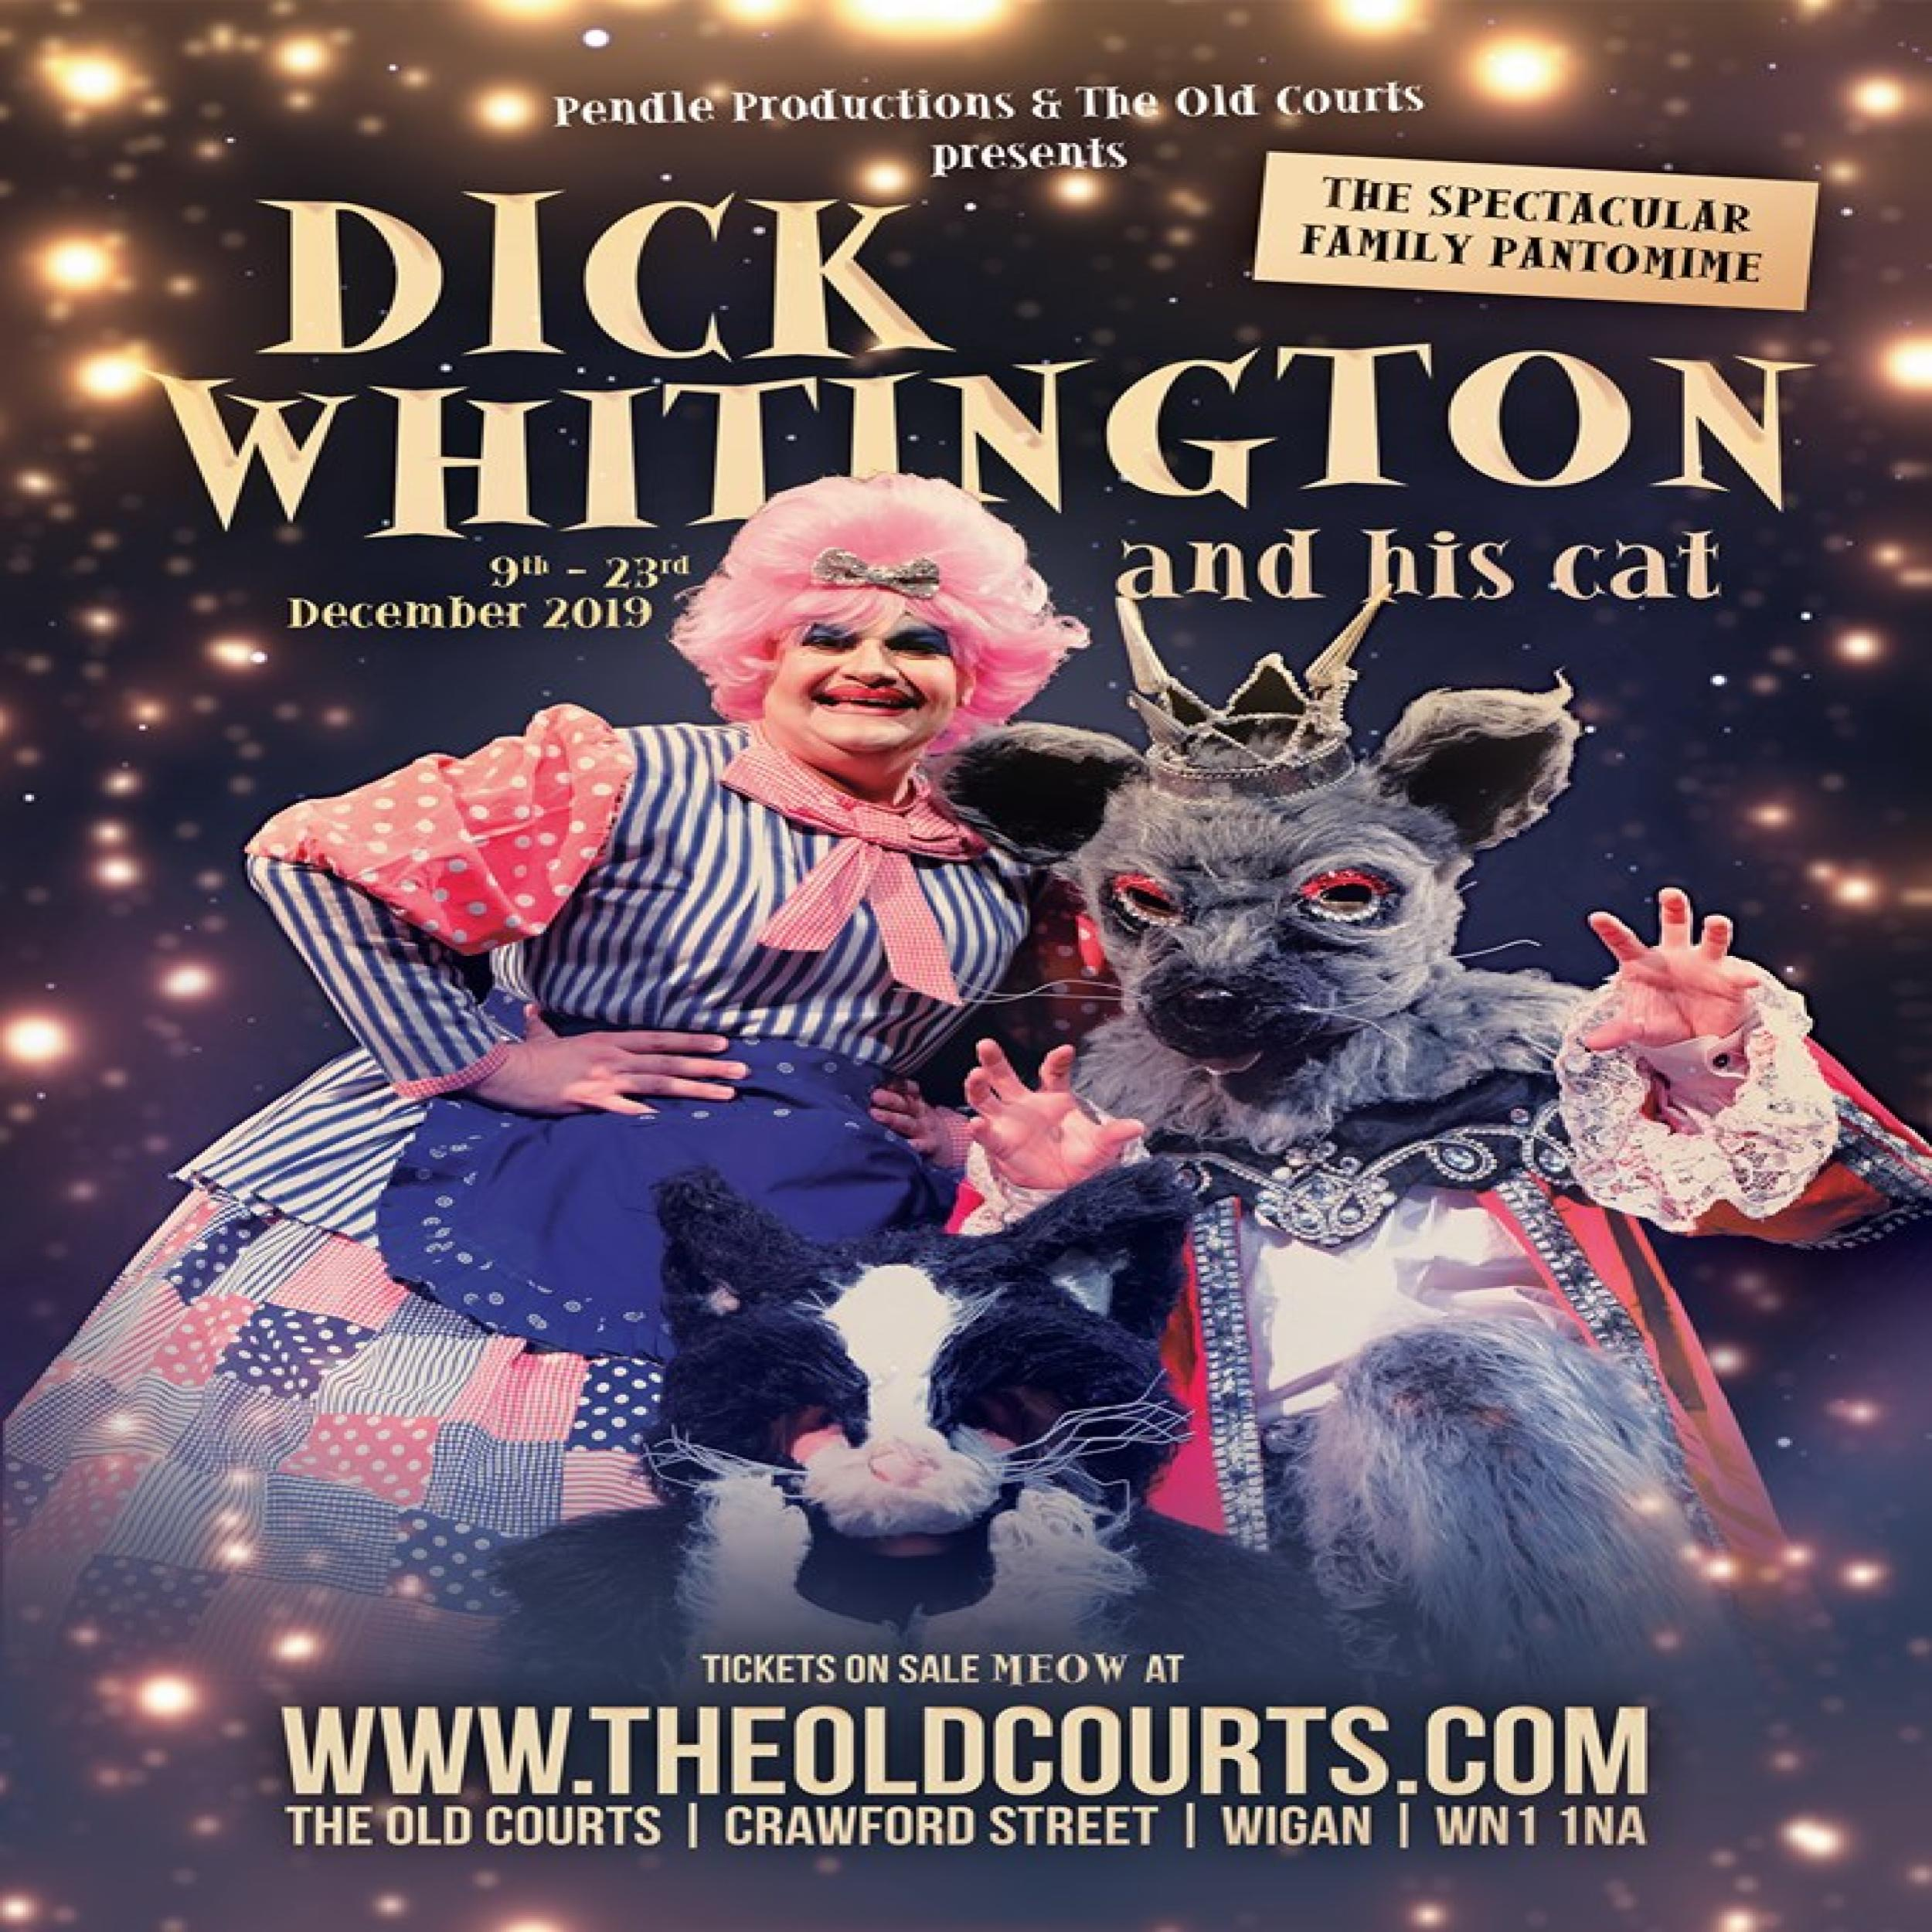 Dick Whittington Panto Giveaway